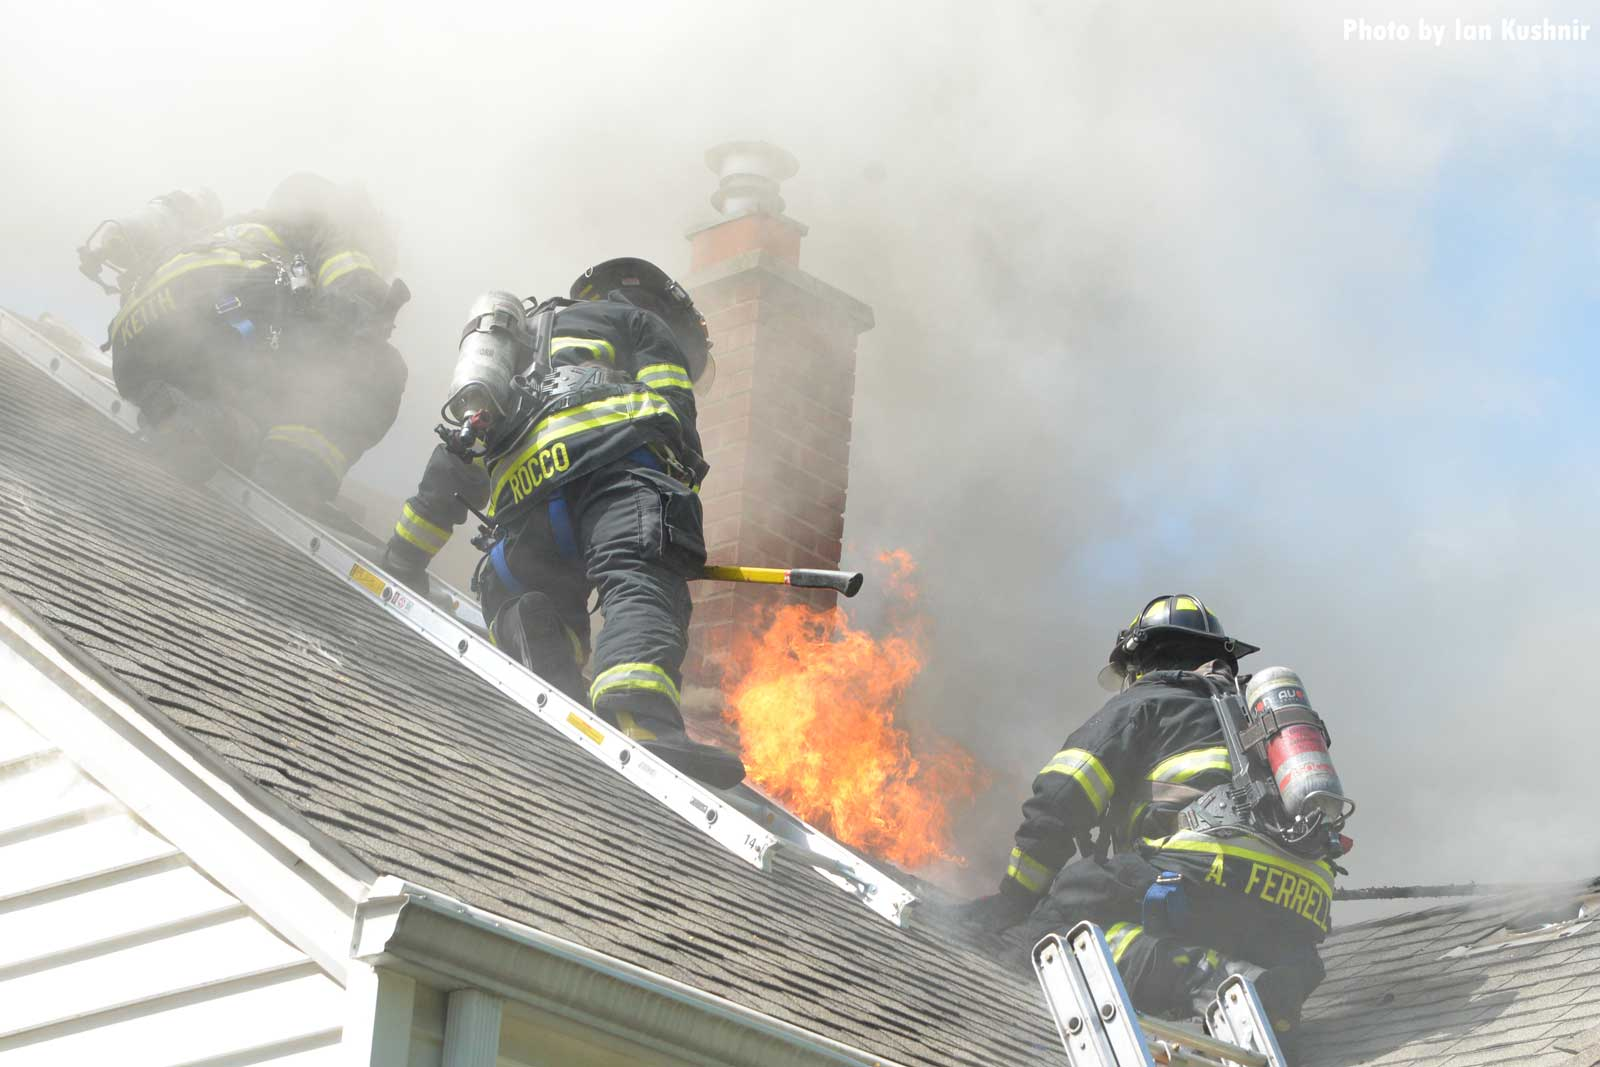 Firefighters move as flames erupt from the roof